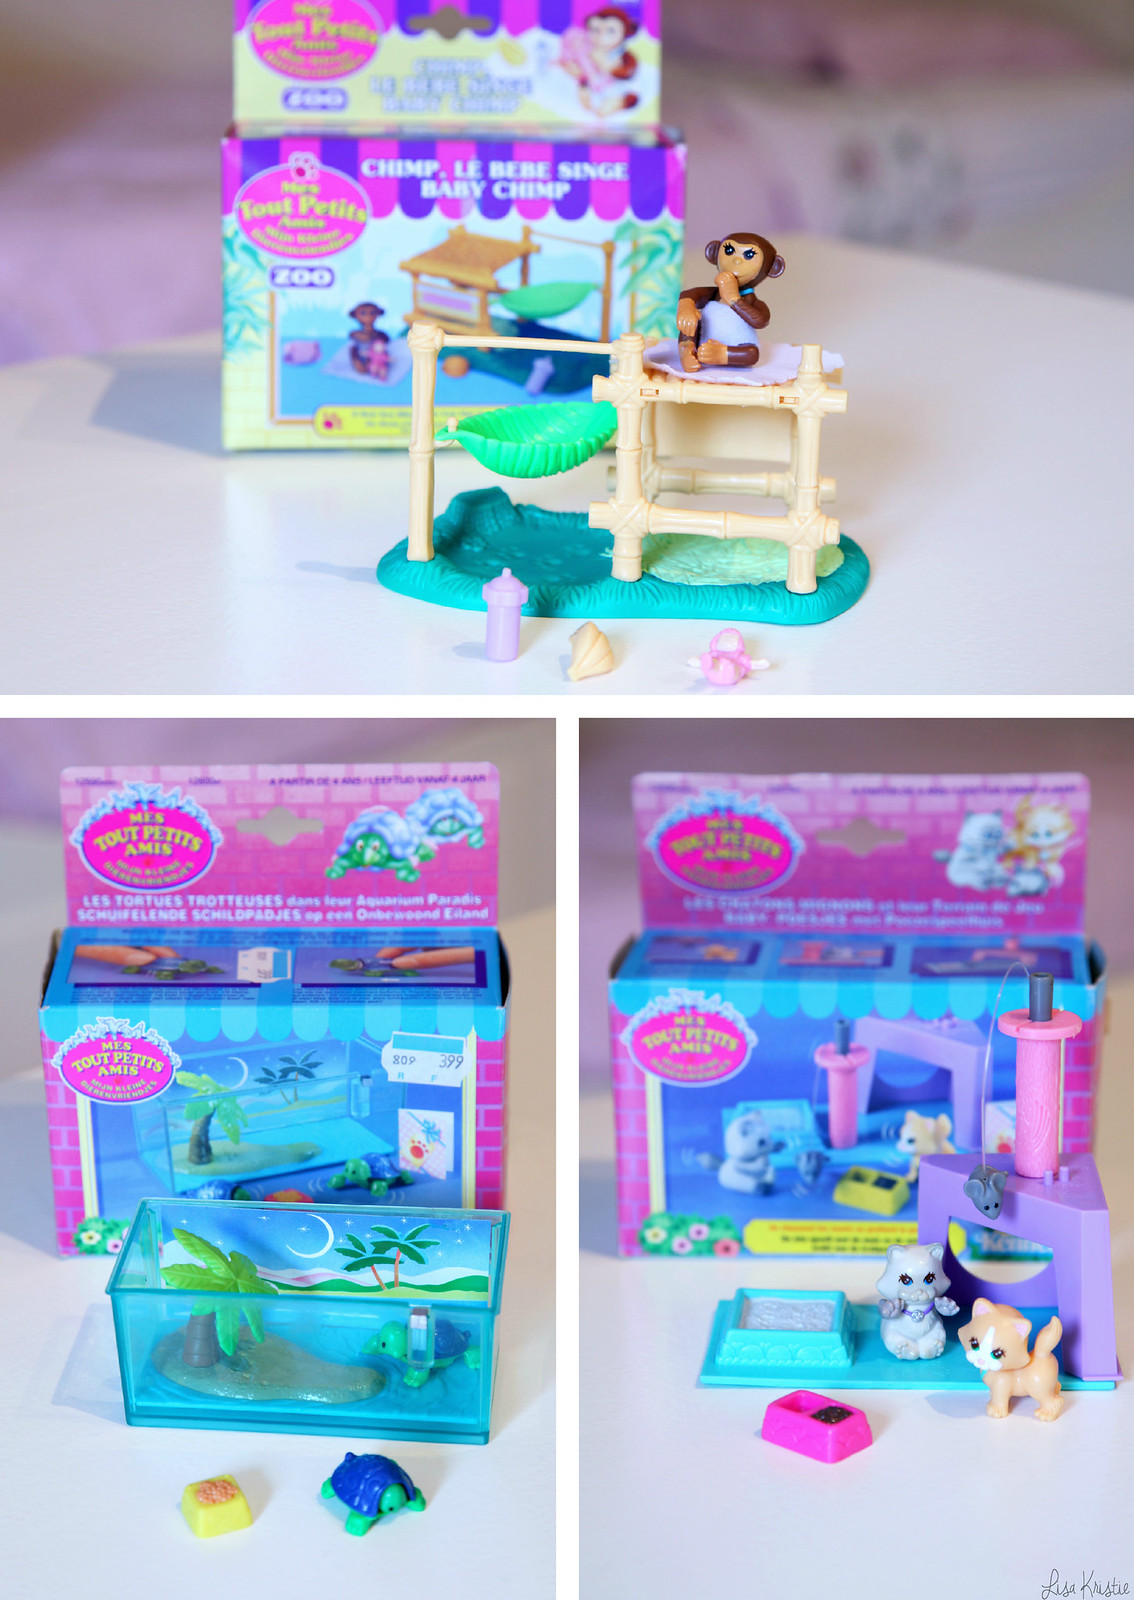 kenner parker hasbro littlest pet shop toys vintage 1992 90's original genuine with packaging chimp turtles tortoise cats kittens complete full set mint tonka corporation mes tout petits amis animals pets